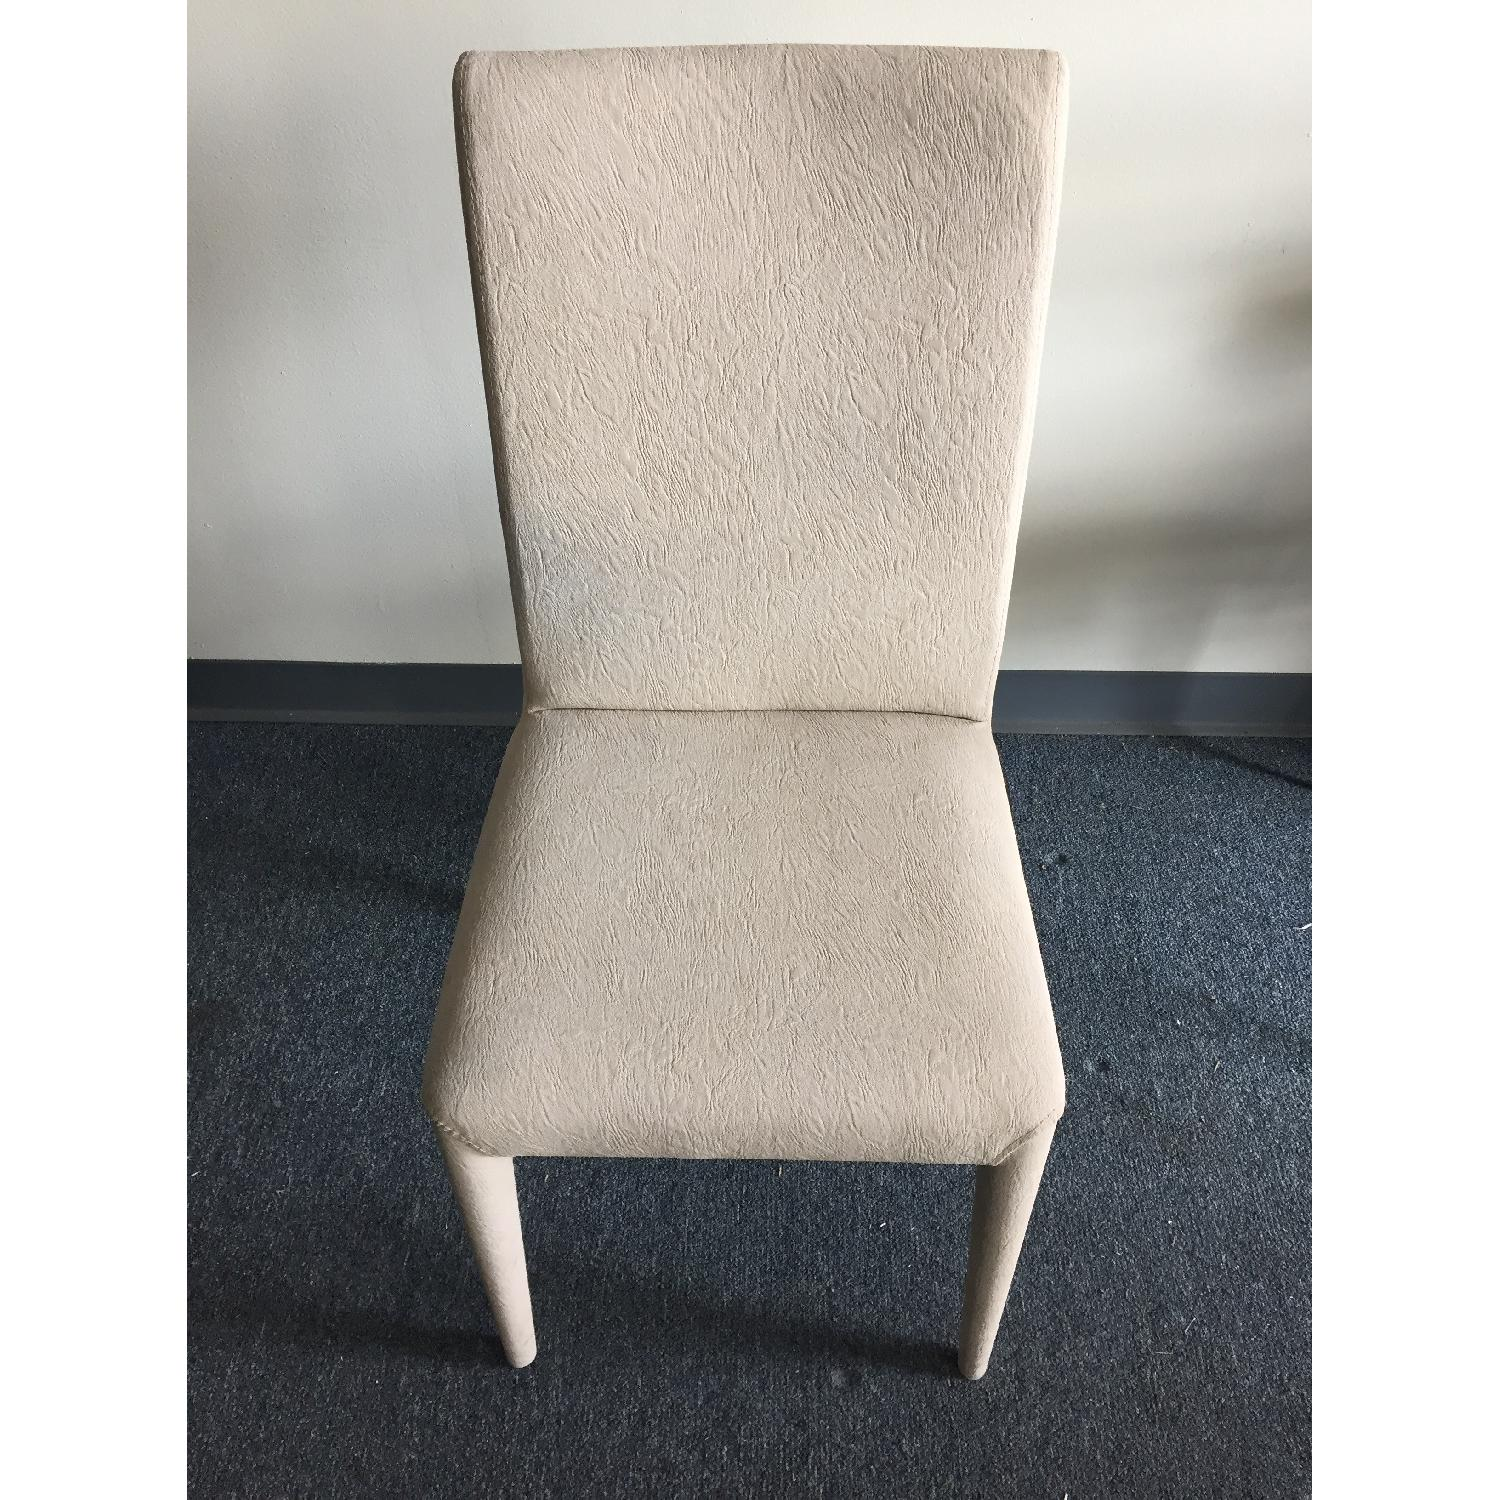 Lazzoni Natural Dining Chair - image-1